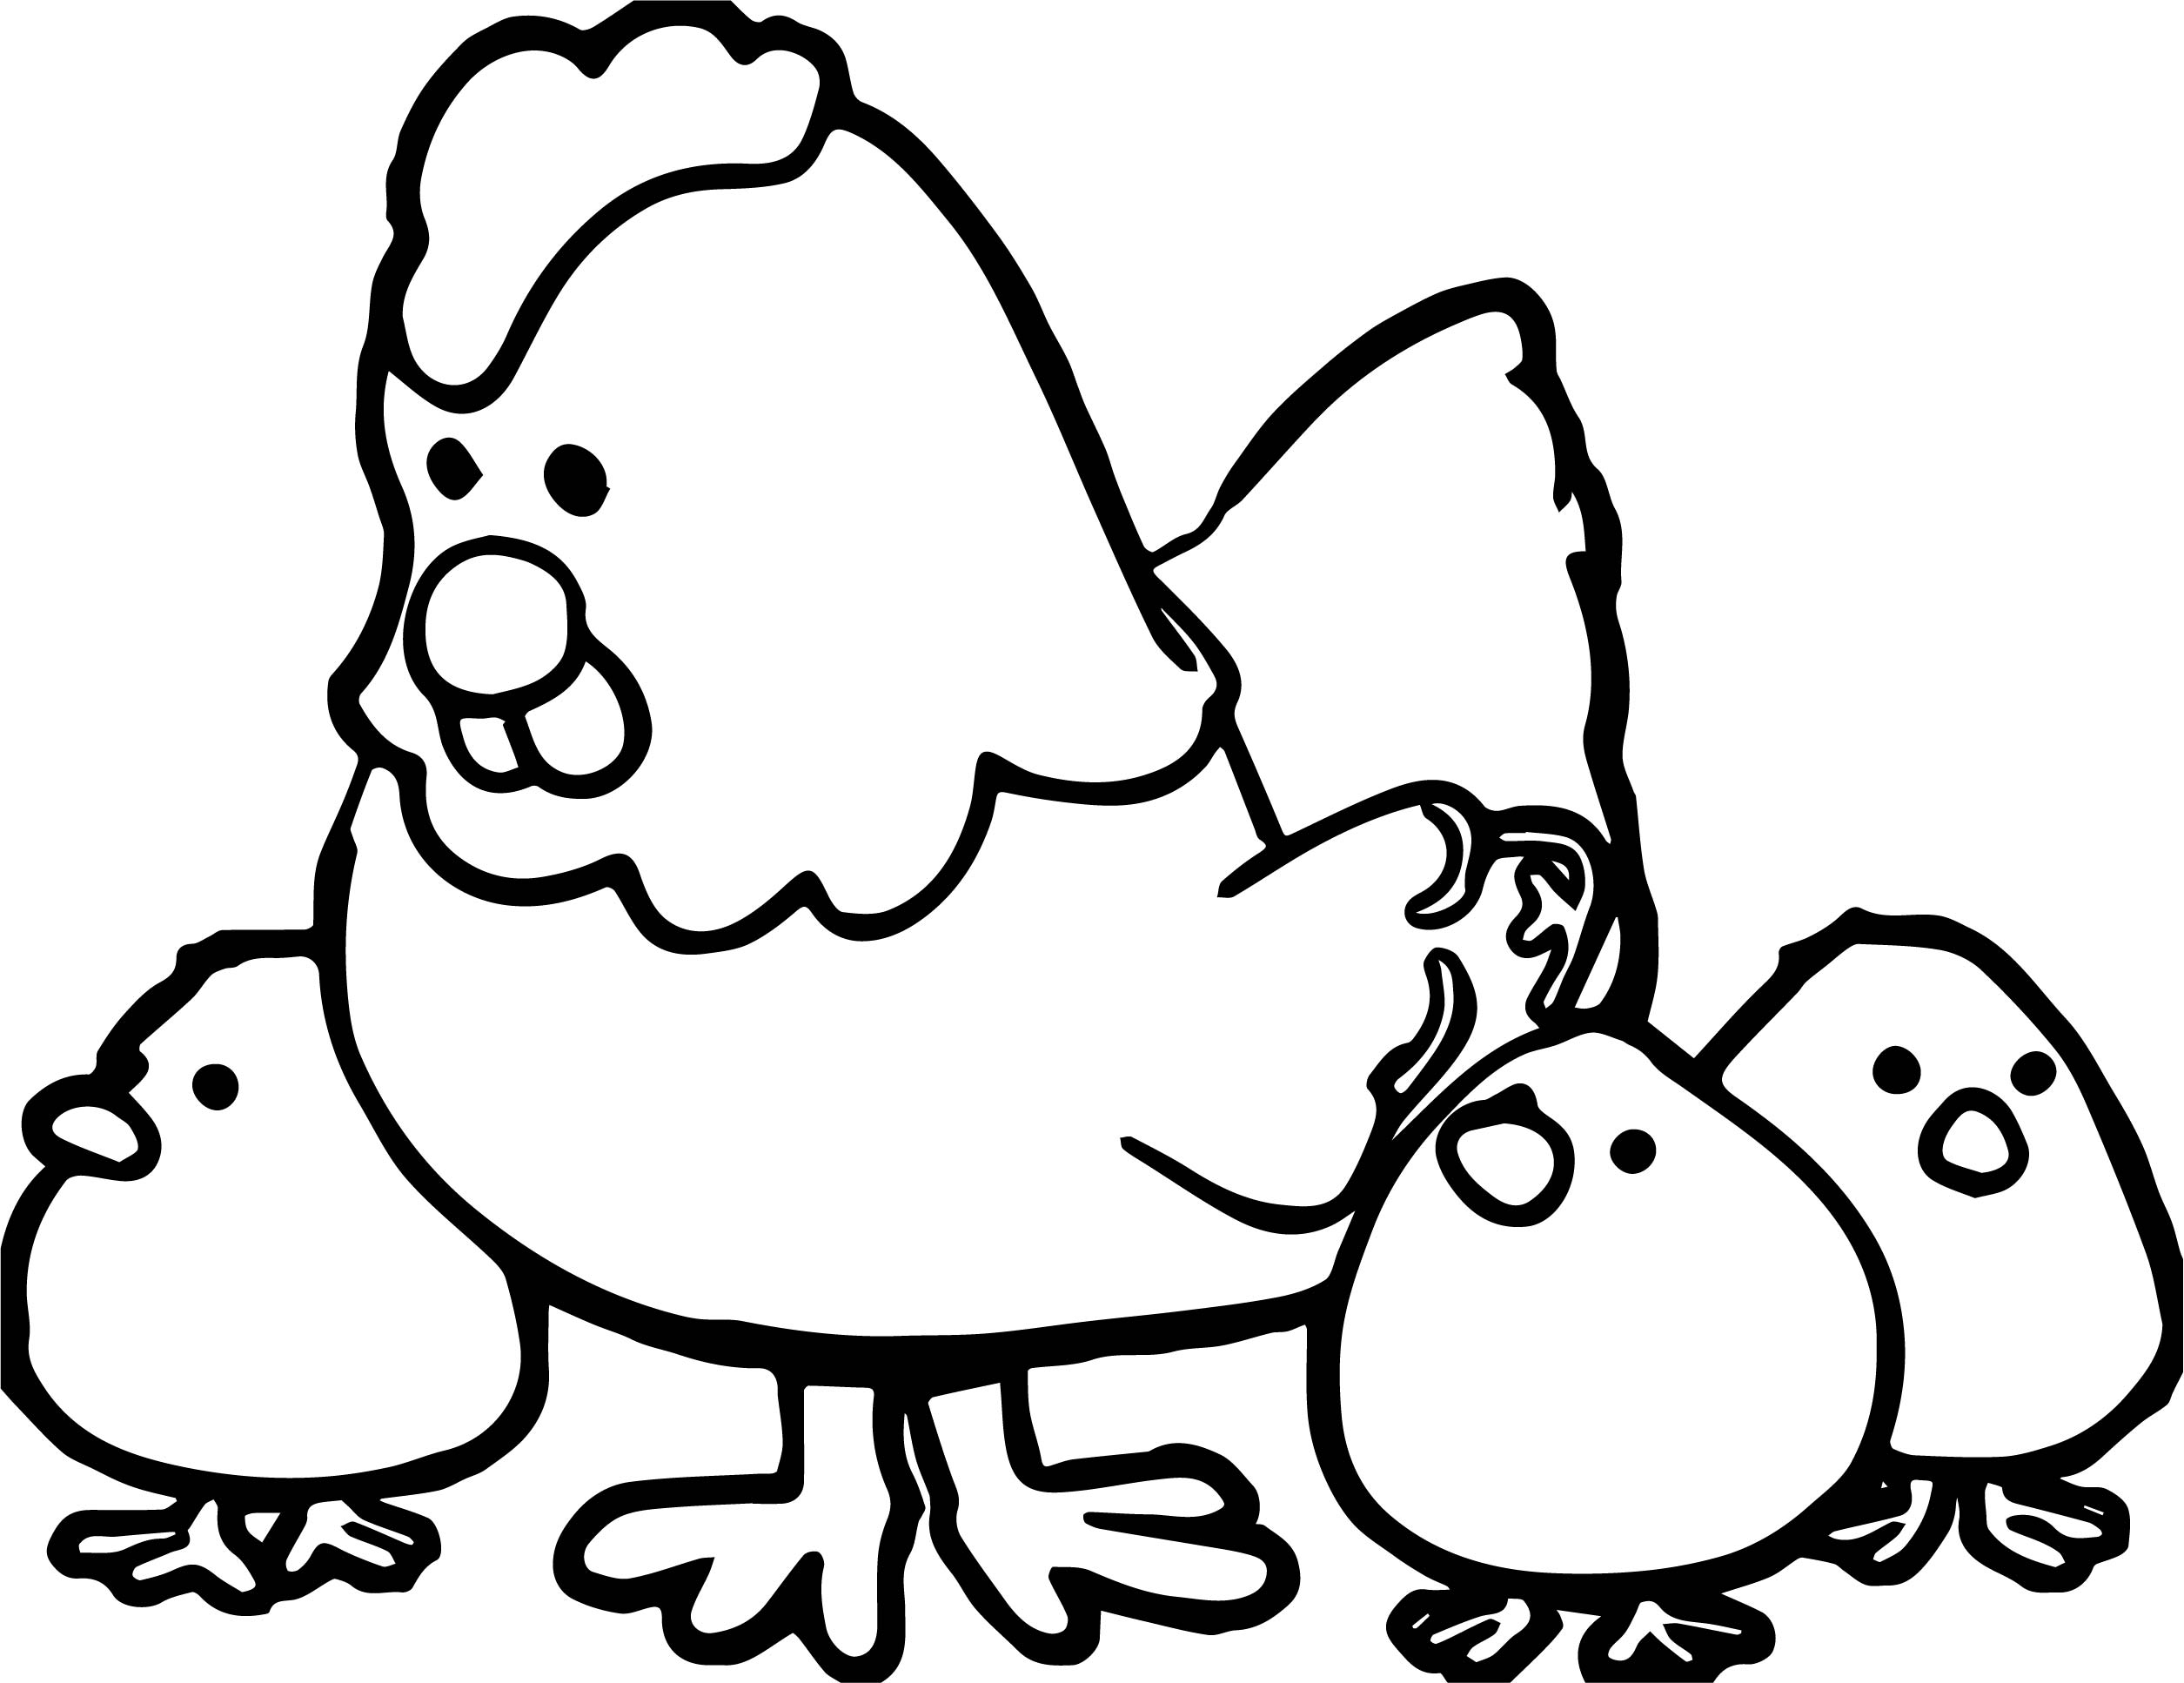 Hen With Chicks Family Coloring Page Wecoloringpage Family Coloring Page